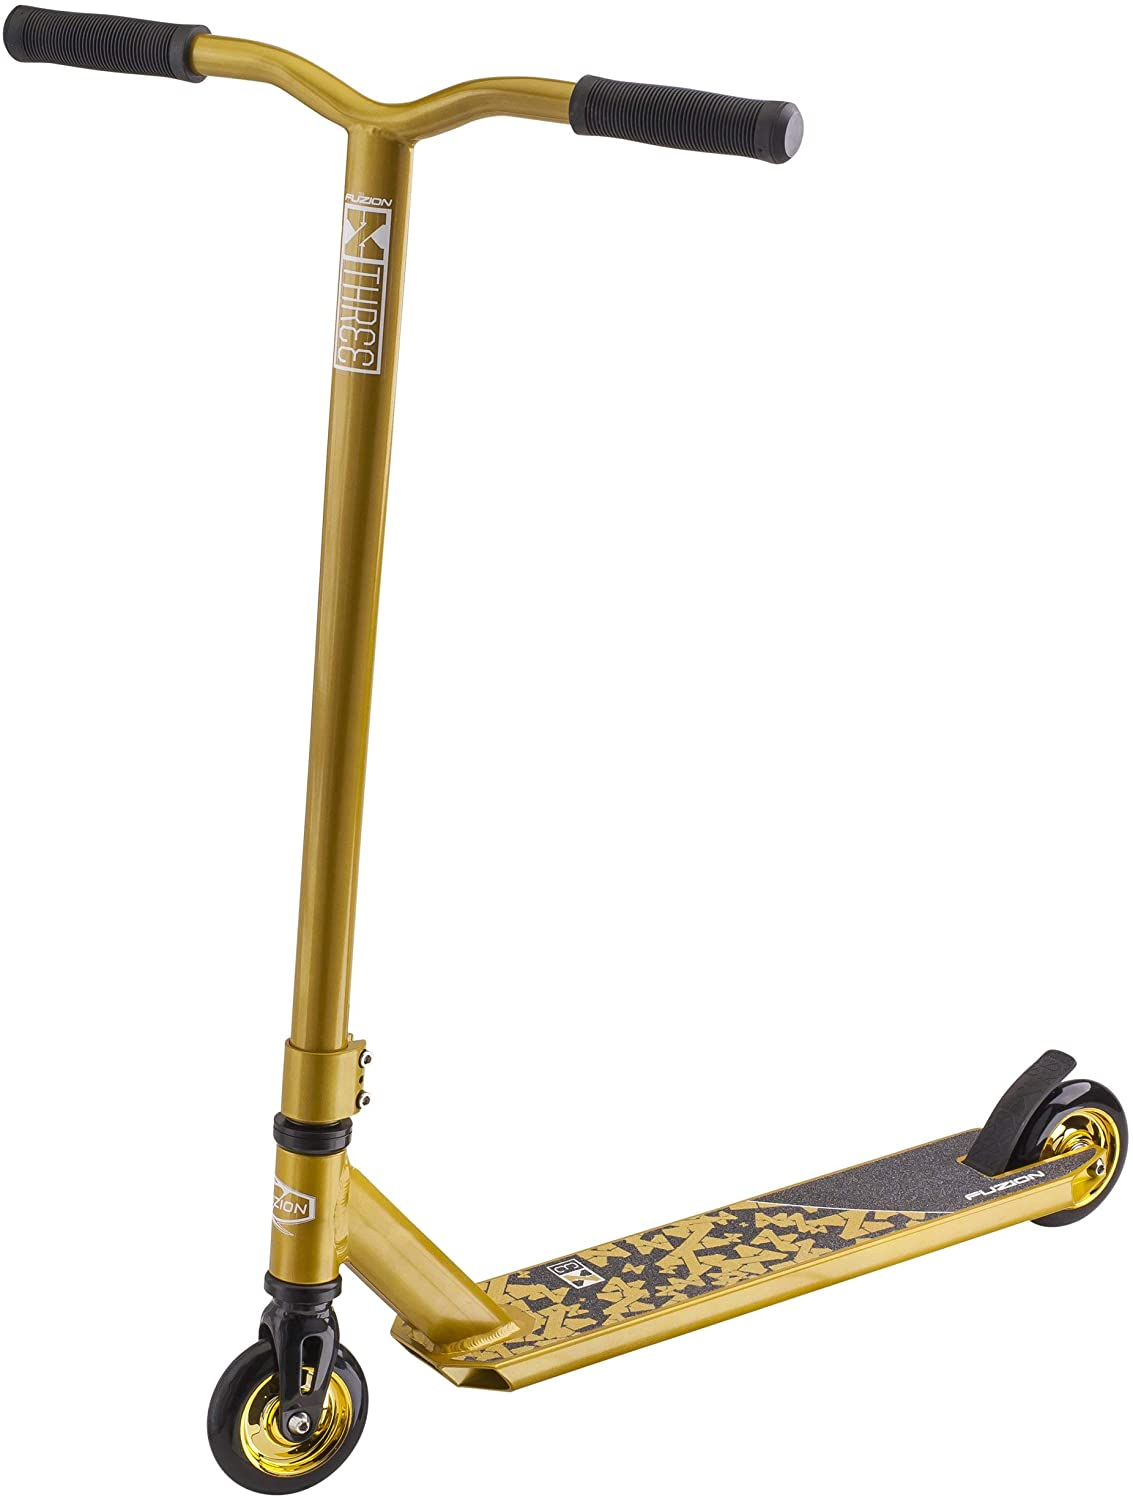 Fuzion X-3 Pro Scooter 2018 Gold